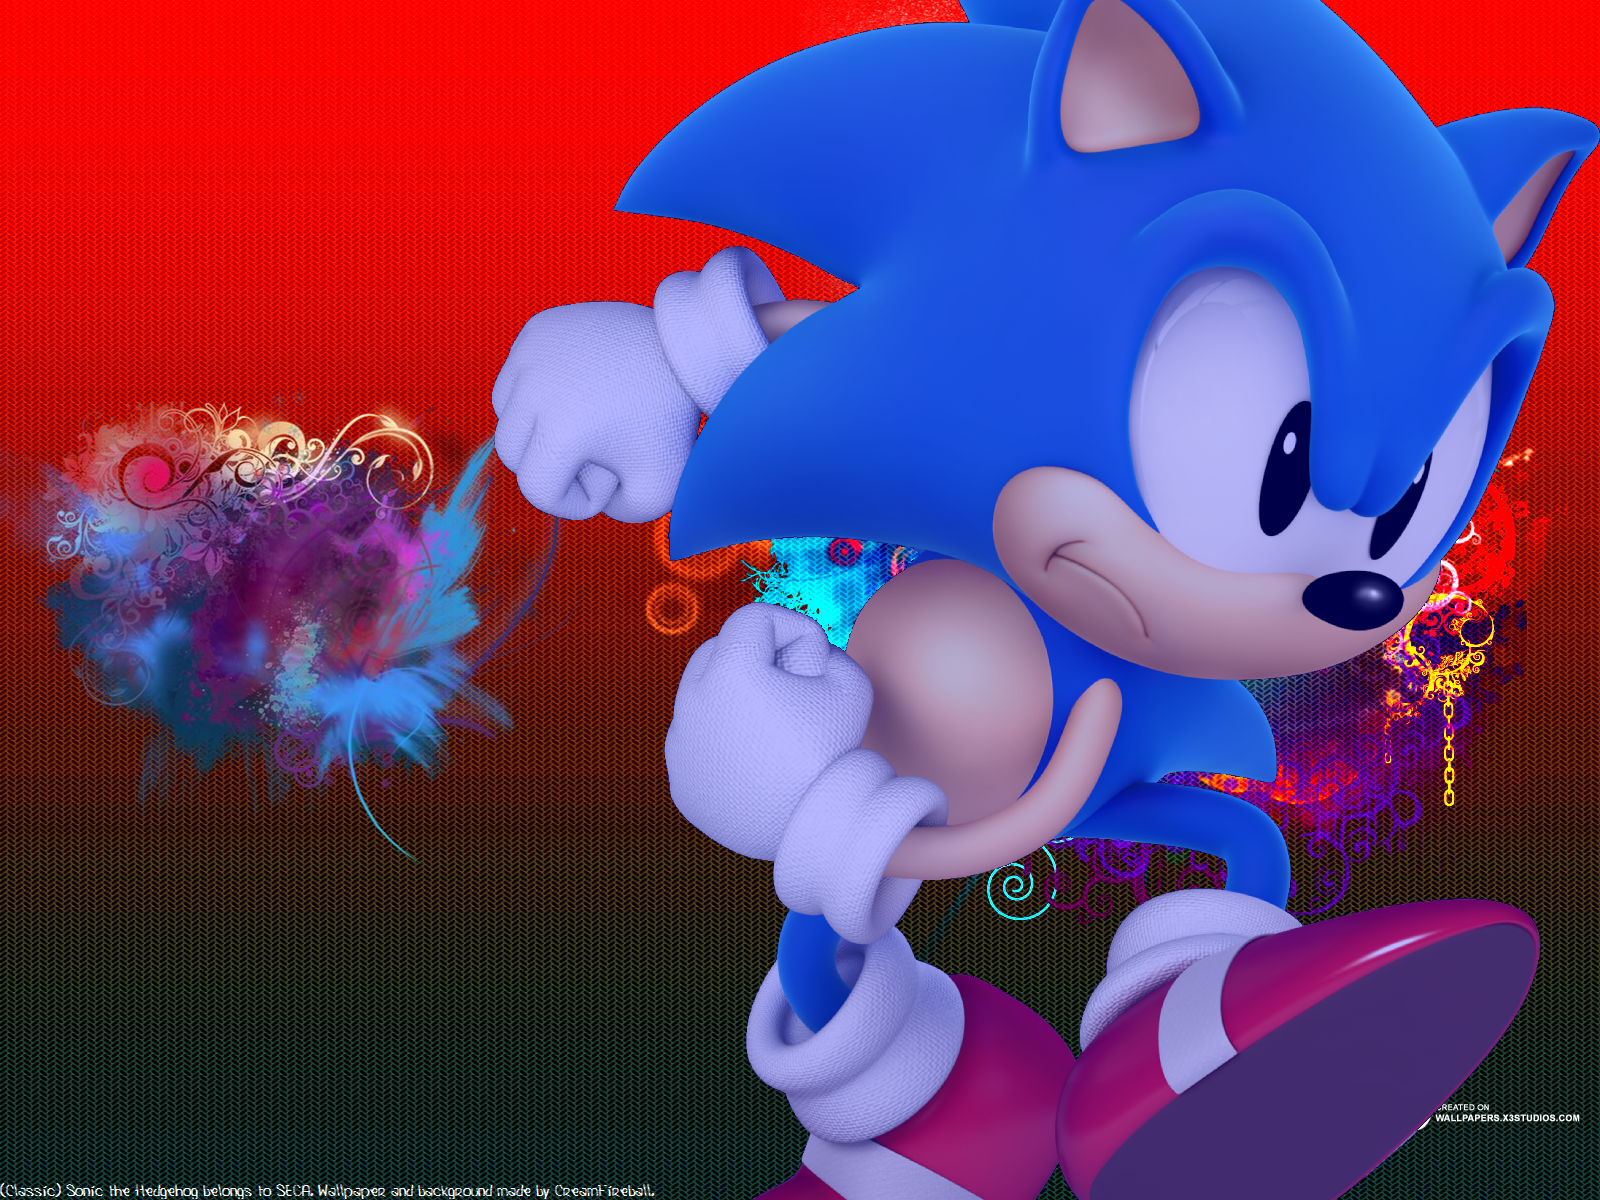 Classic Sonic Wallpaper By Creamfireballwps On Deviantart